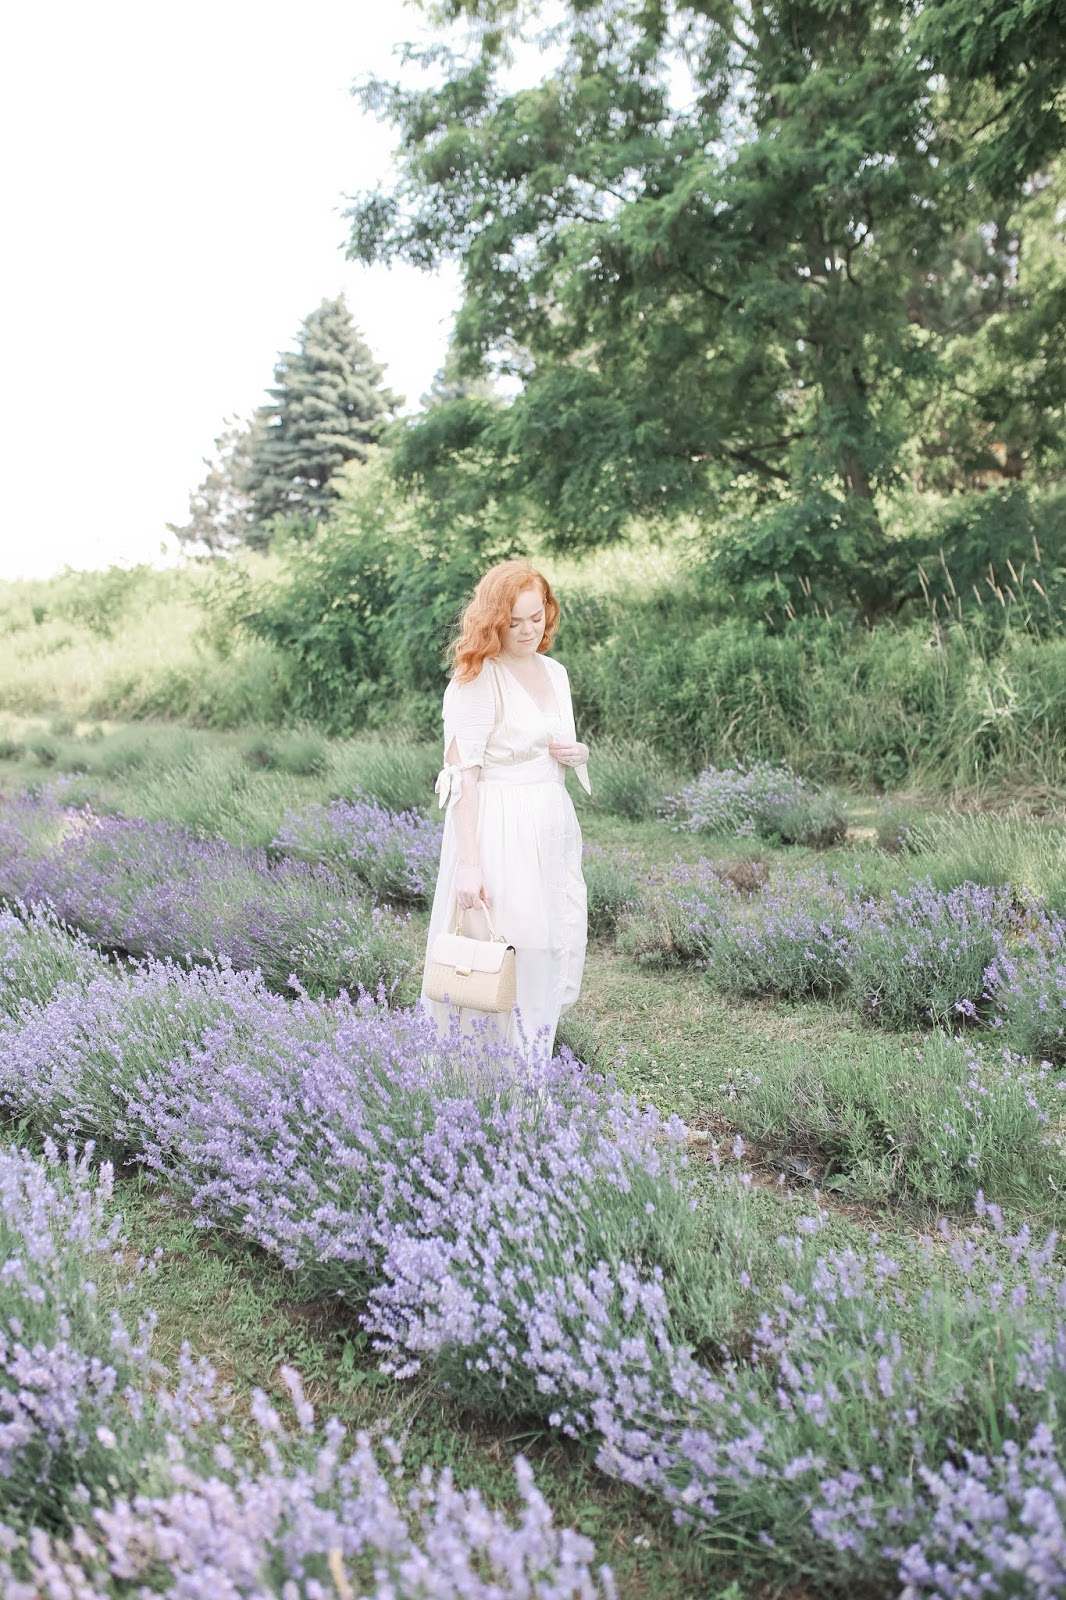 Lavenders Blue... I Will Love You   Hunting Lavender Fields In A Sweet Linen Frock   Outfit Roundup & Recommendations   labellesirene.ca